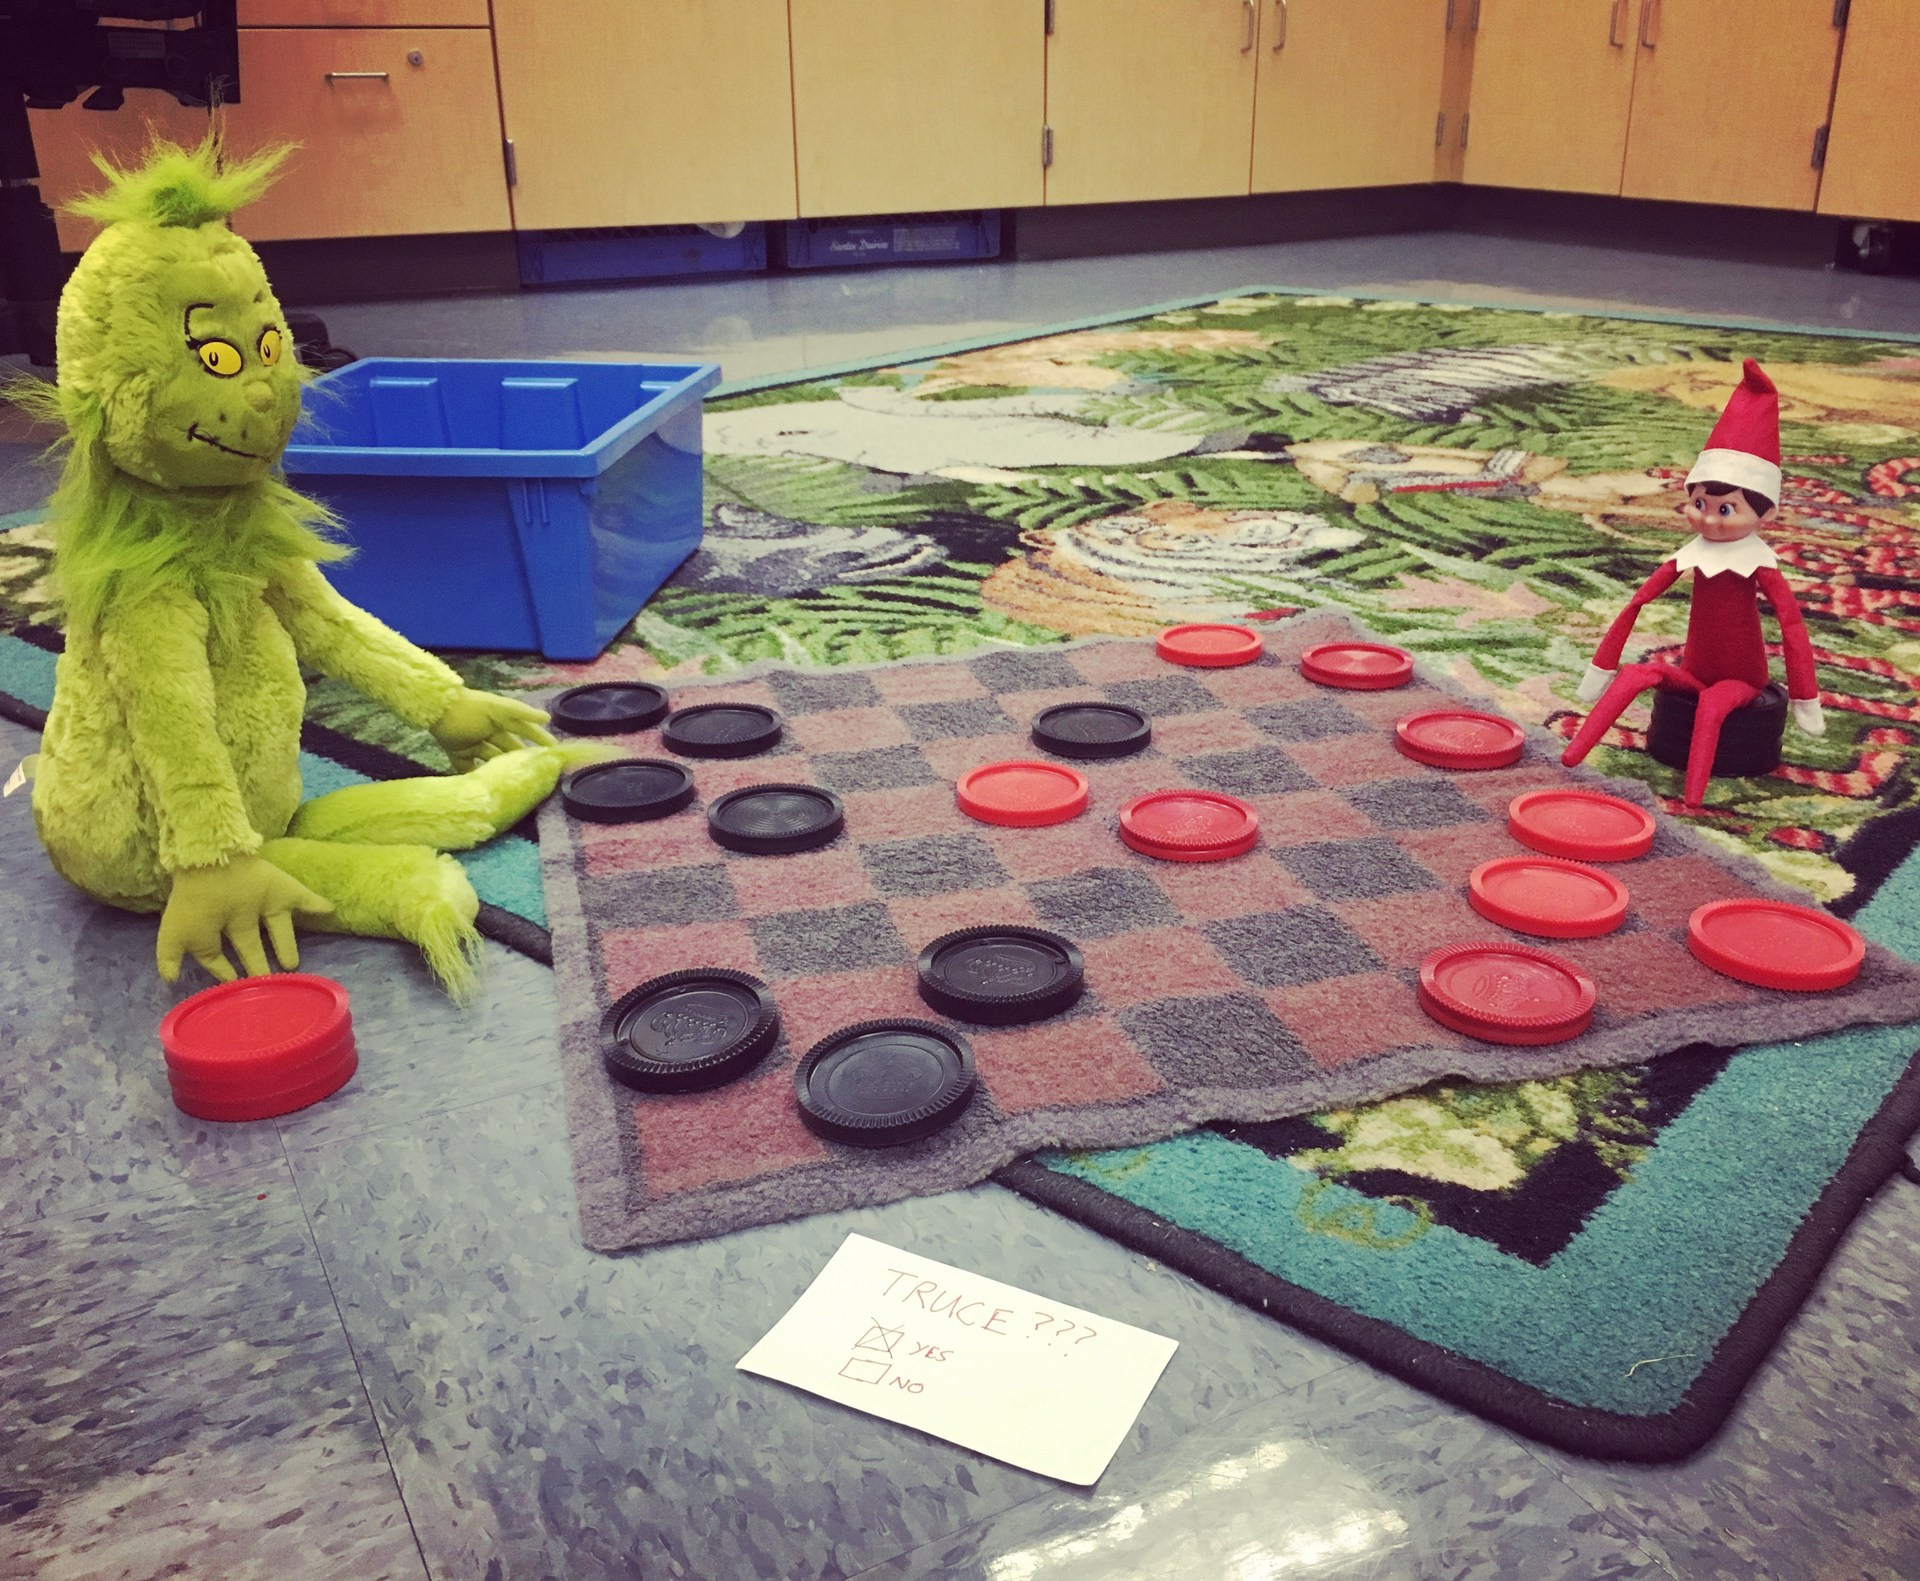 Pippin and the Grinch form a truce over the weekend and decide to play checkers instead of fighting.